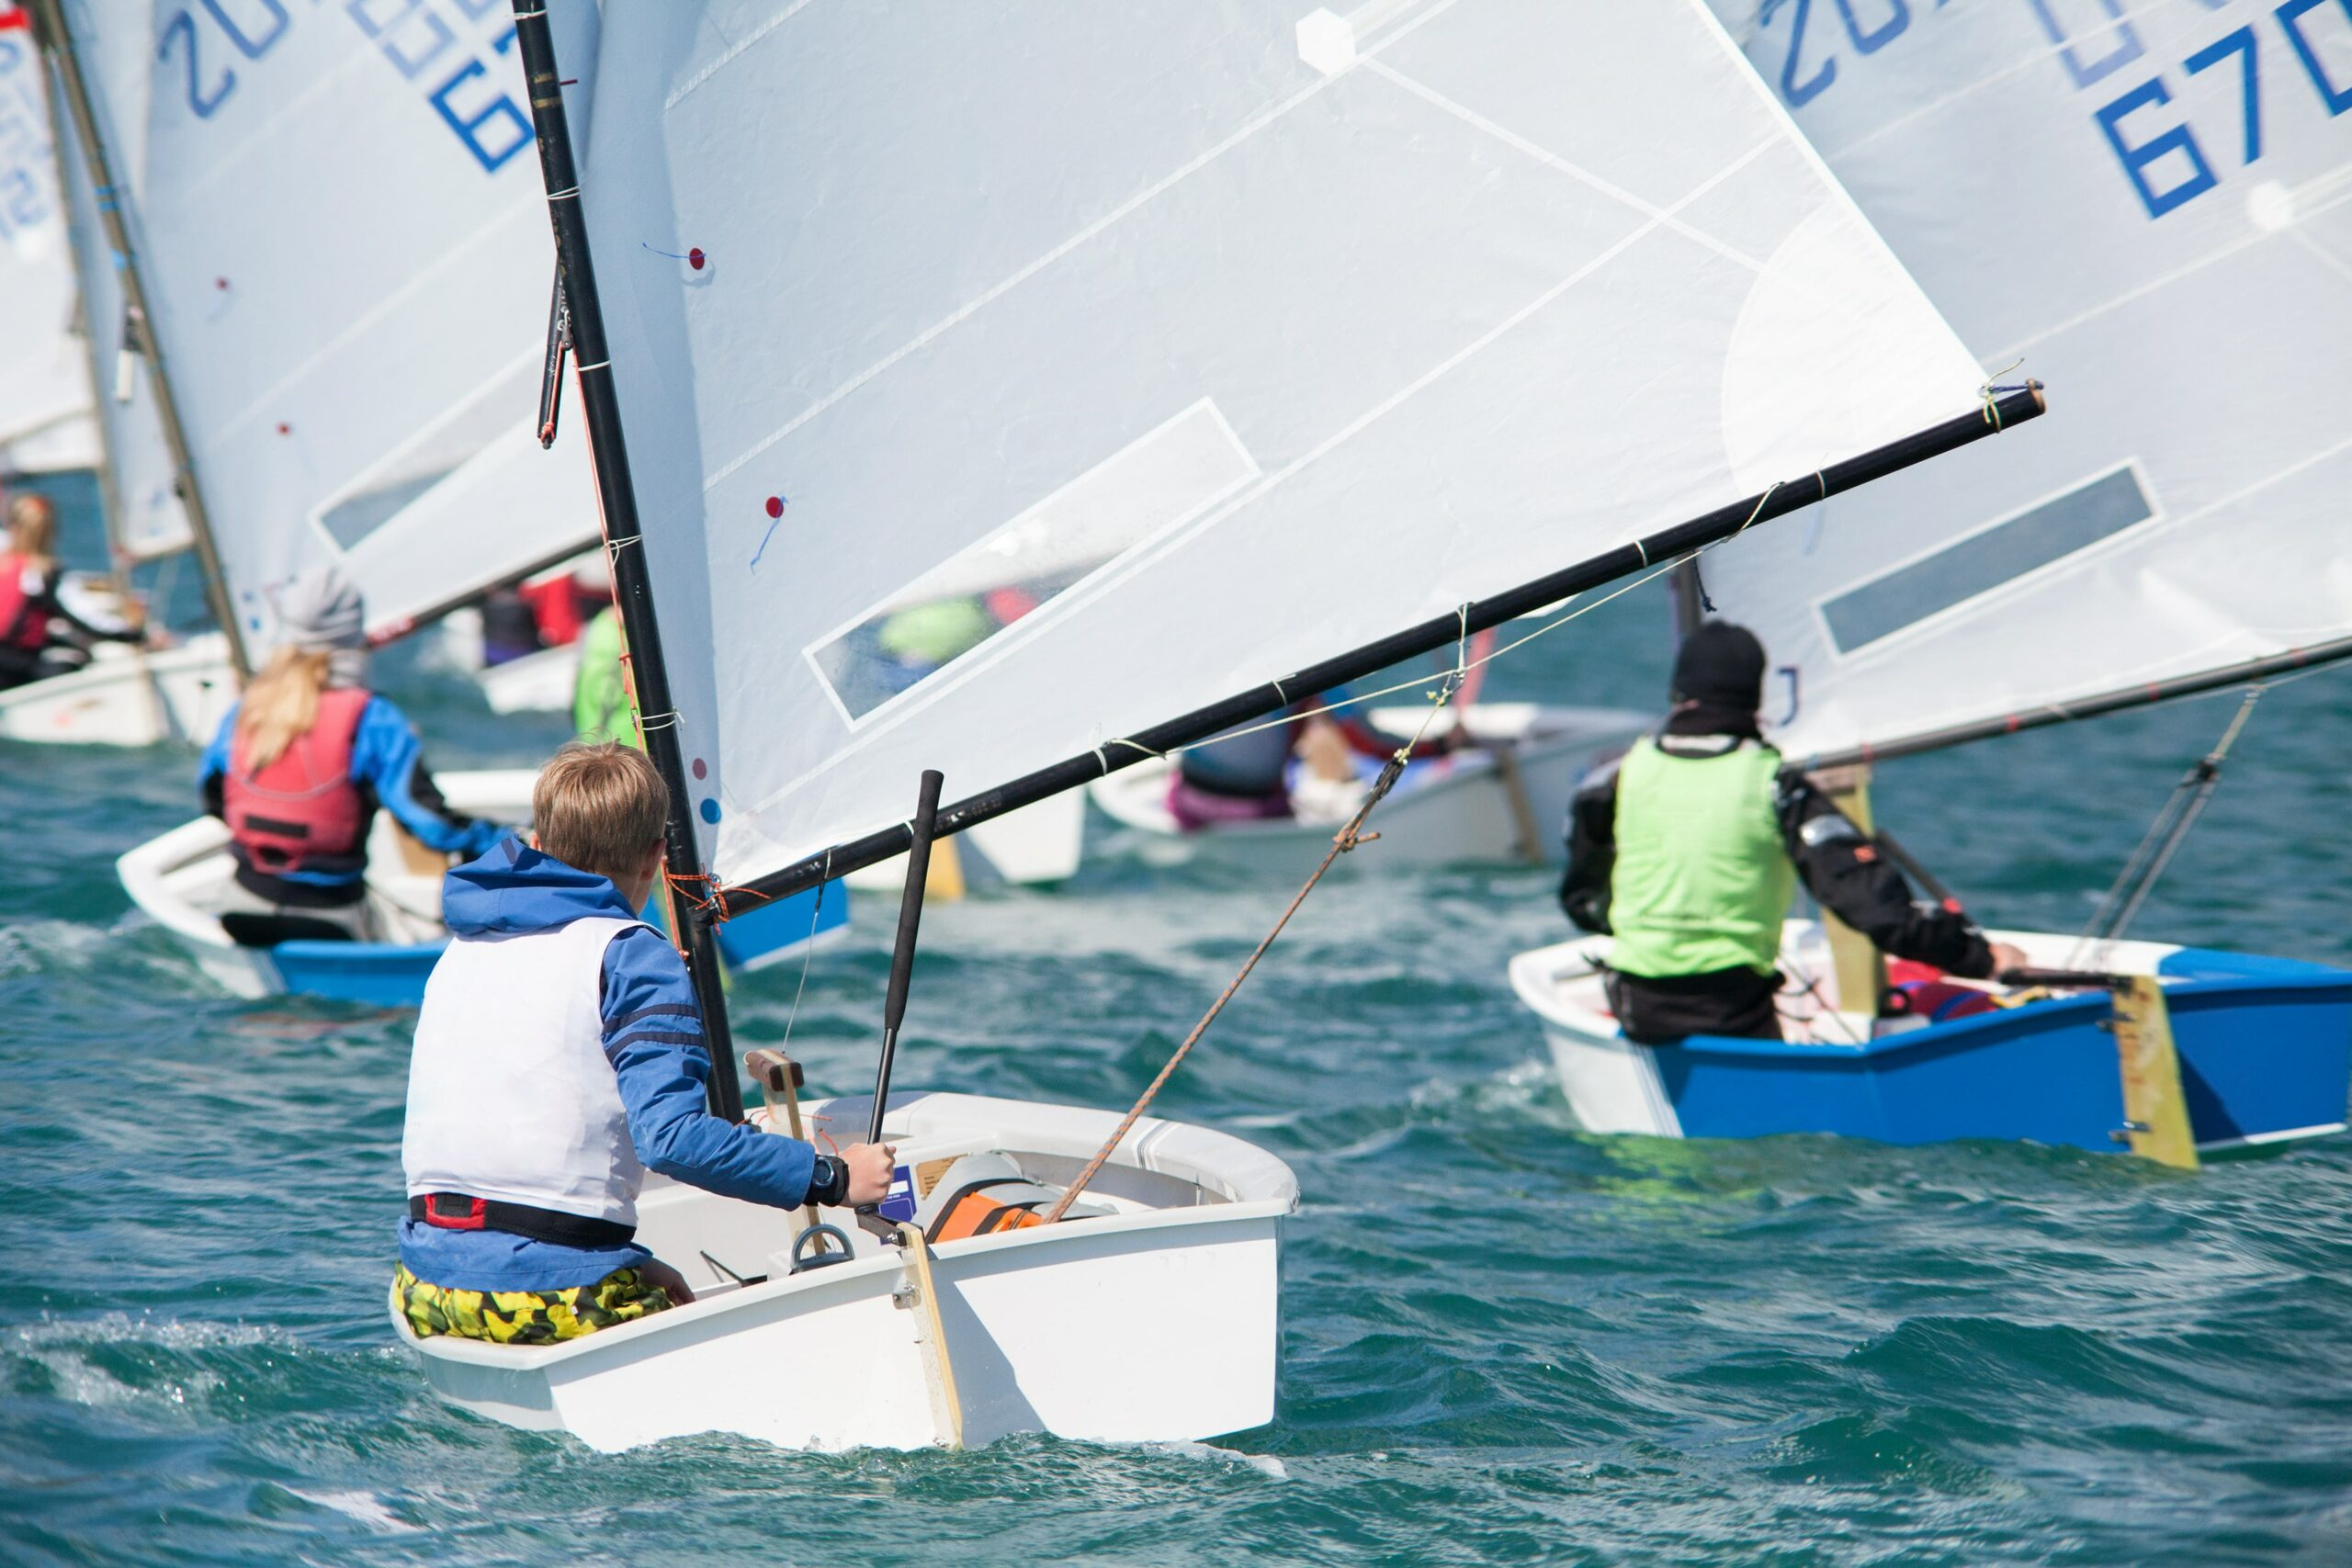 Youth at a sailing regatta